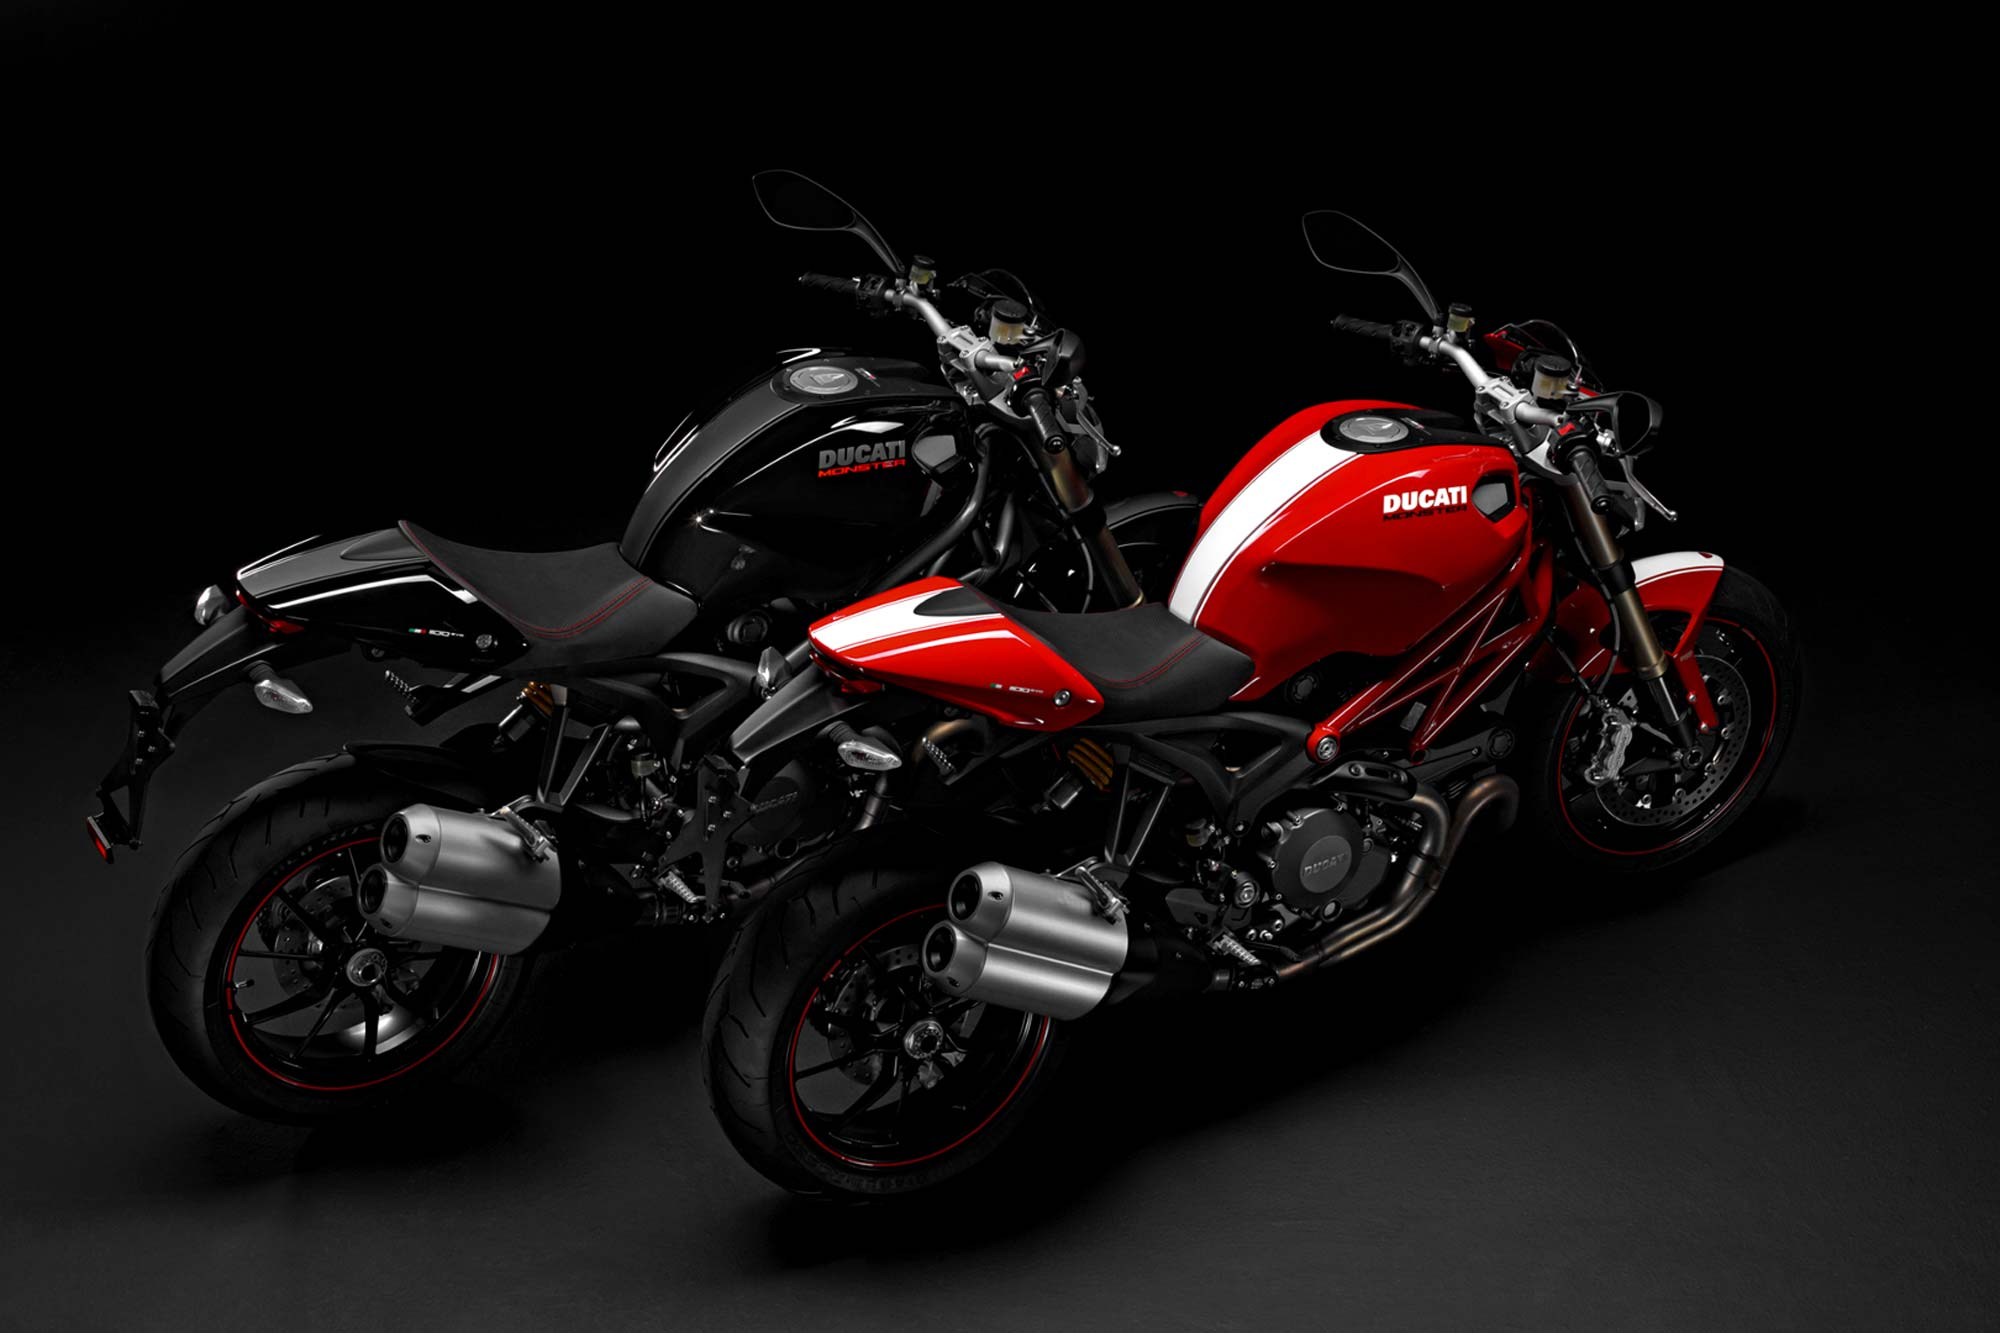 Ducati Monster 1100 S 2010 images #79351